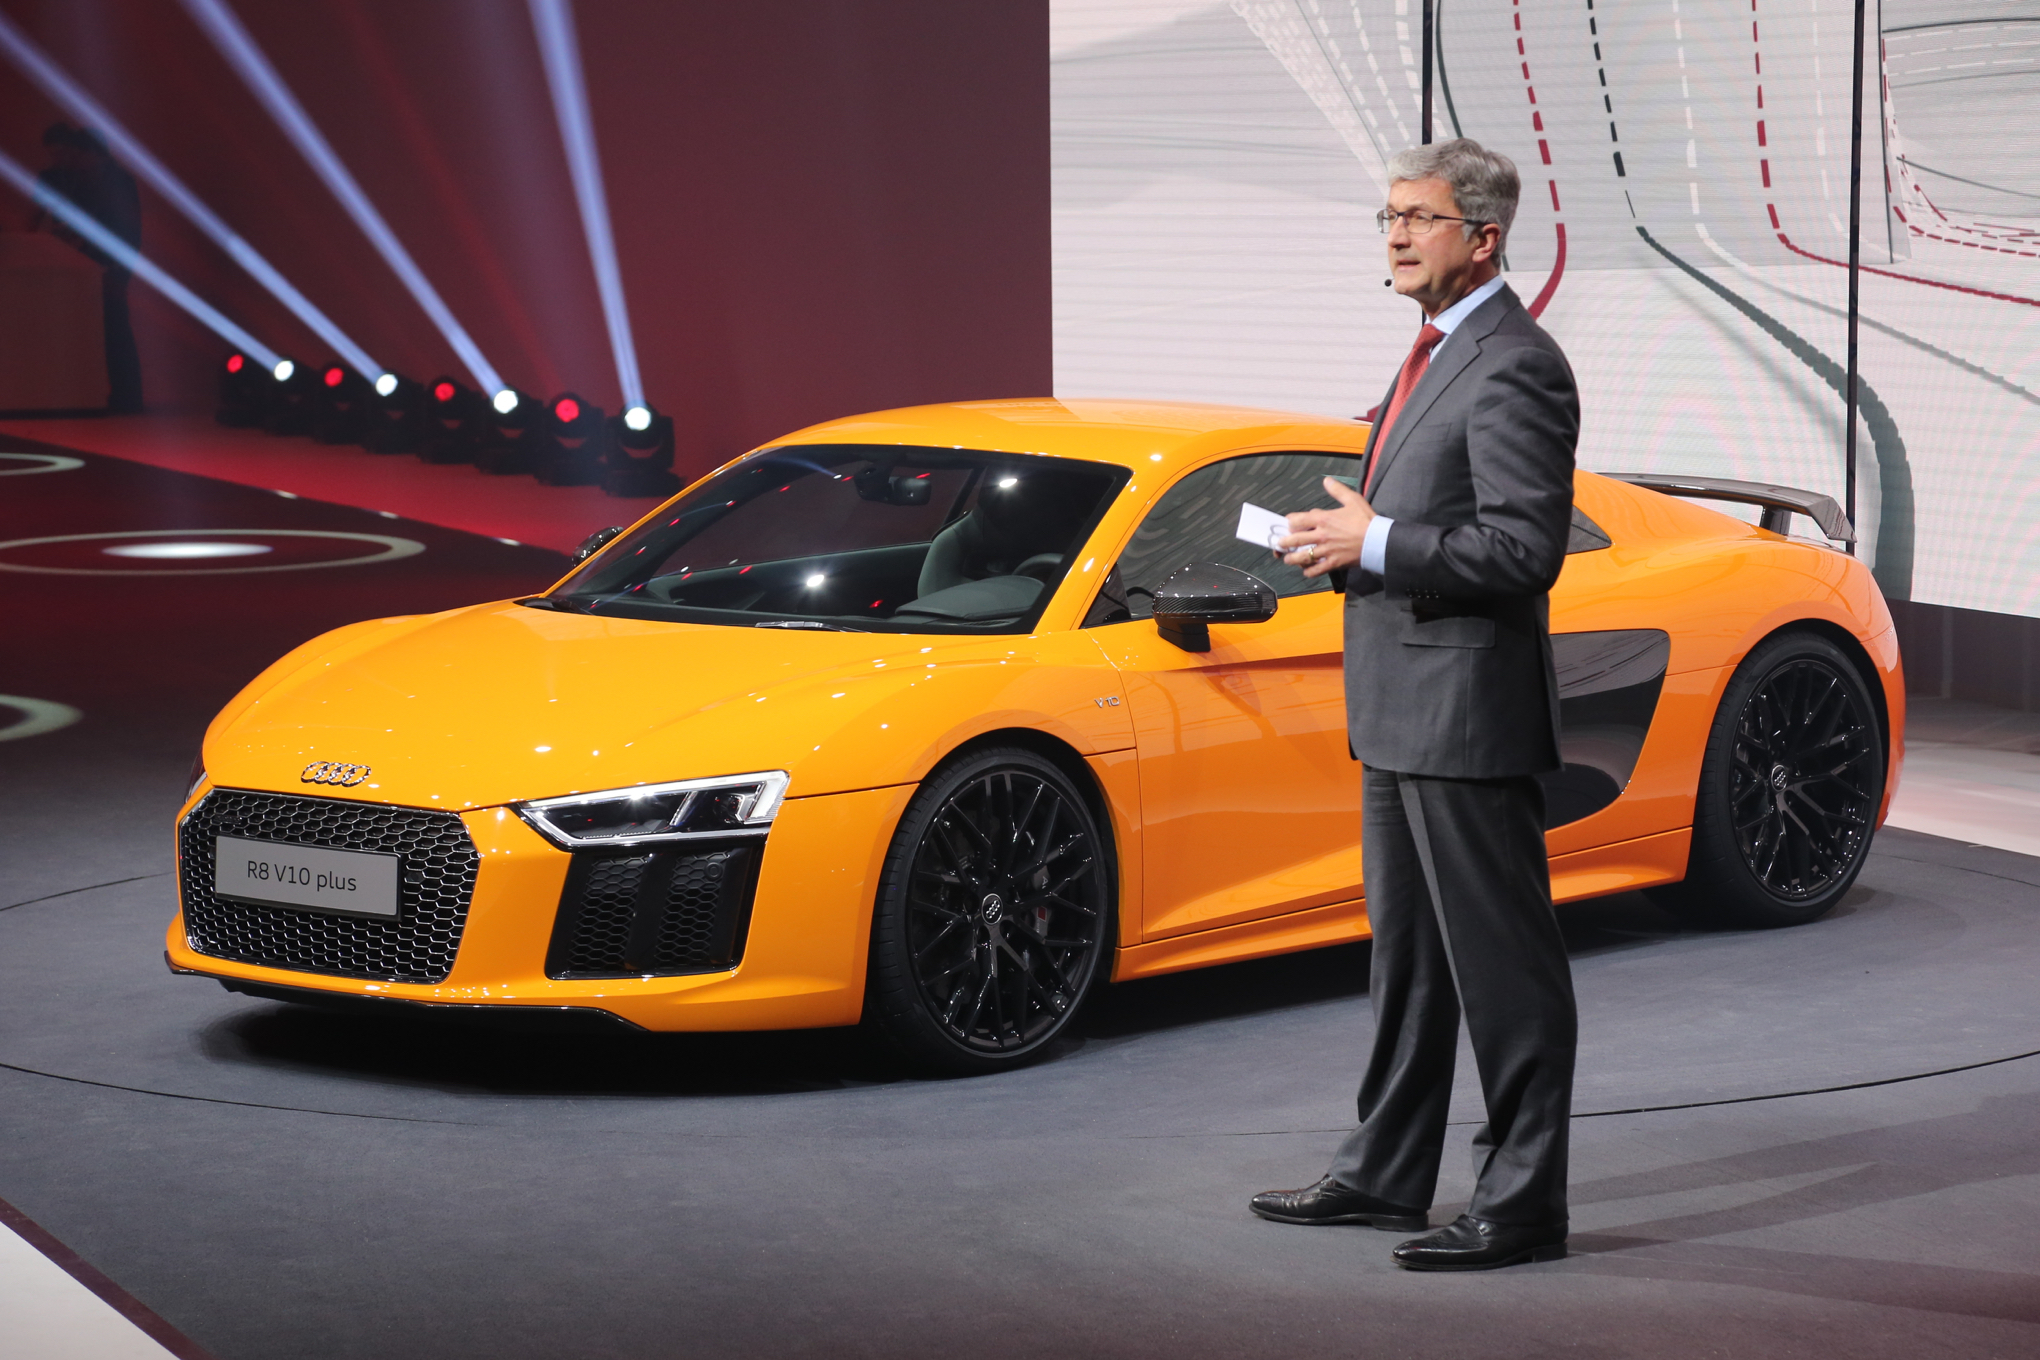 Audi shows 2017 R8 track testing [Video] Car Wallpapers 2040x1360